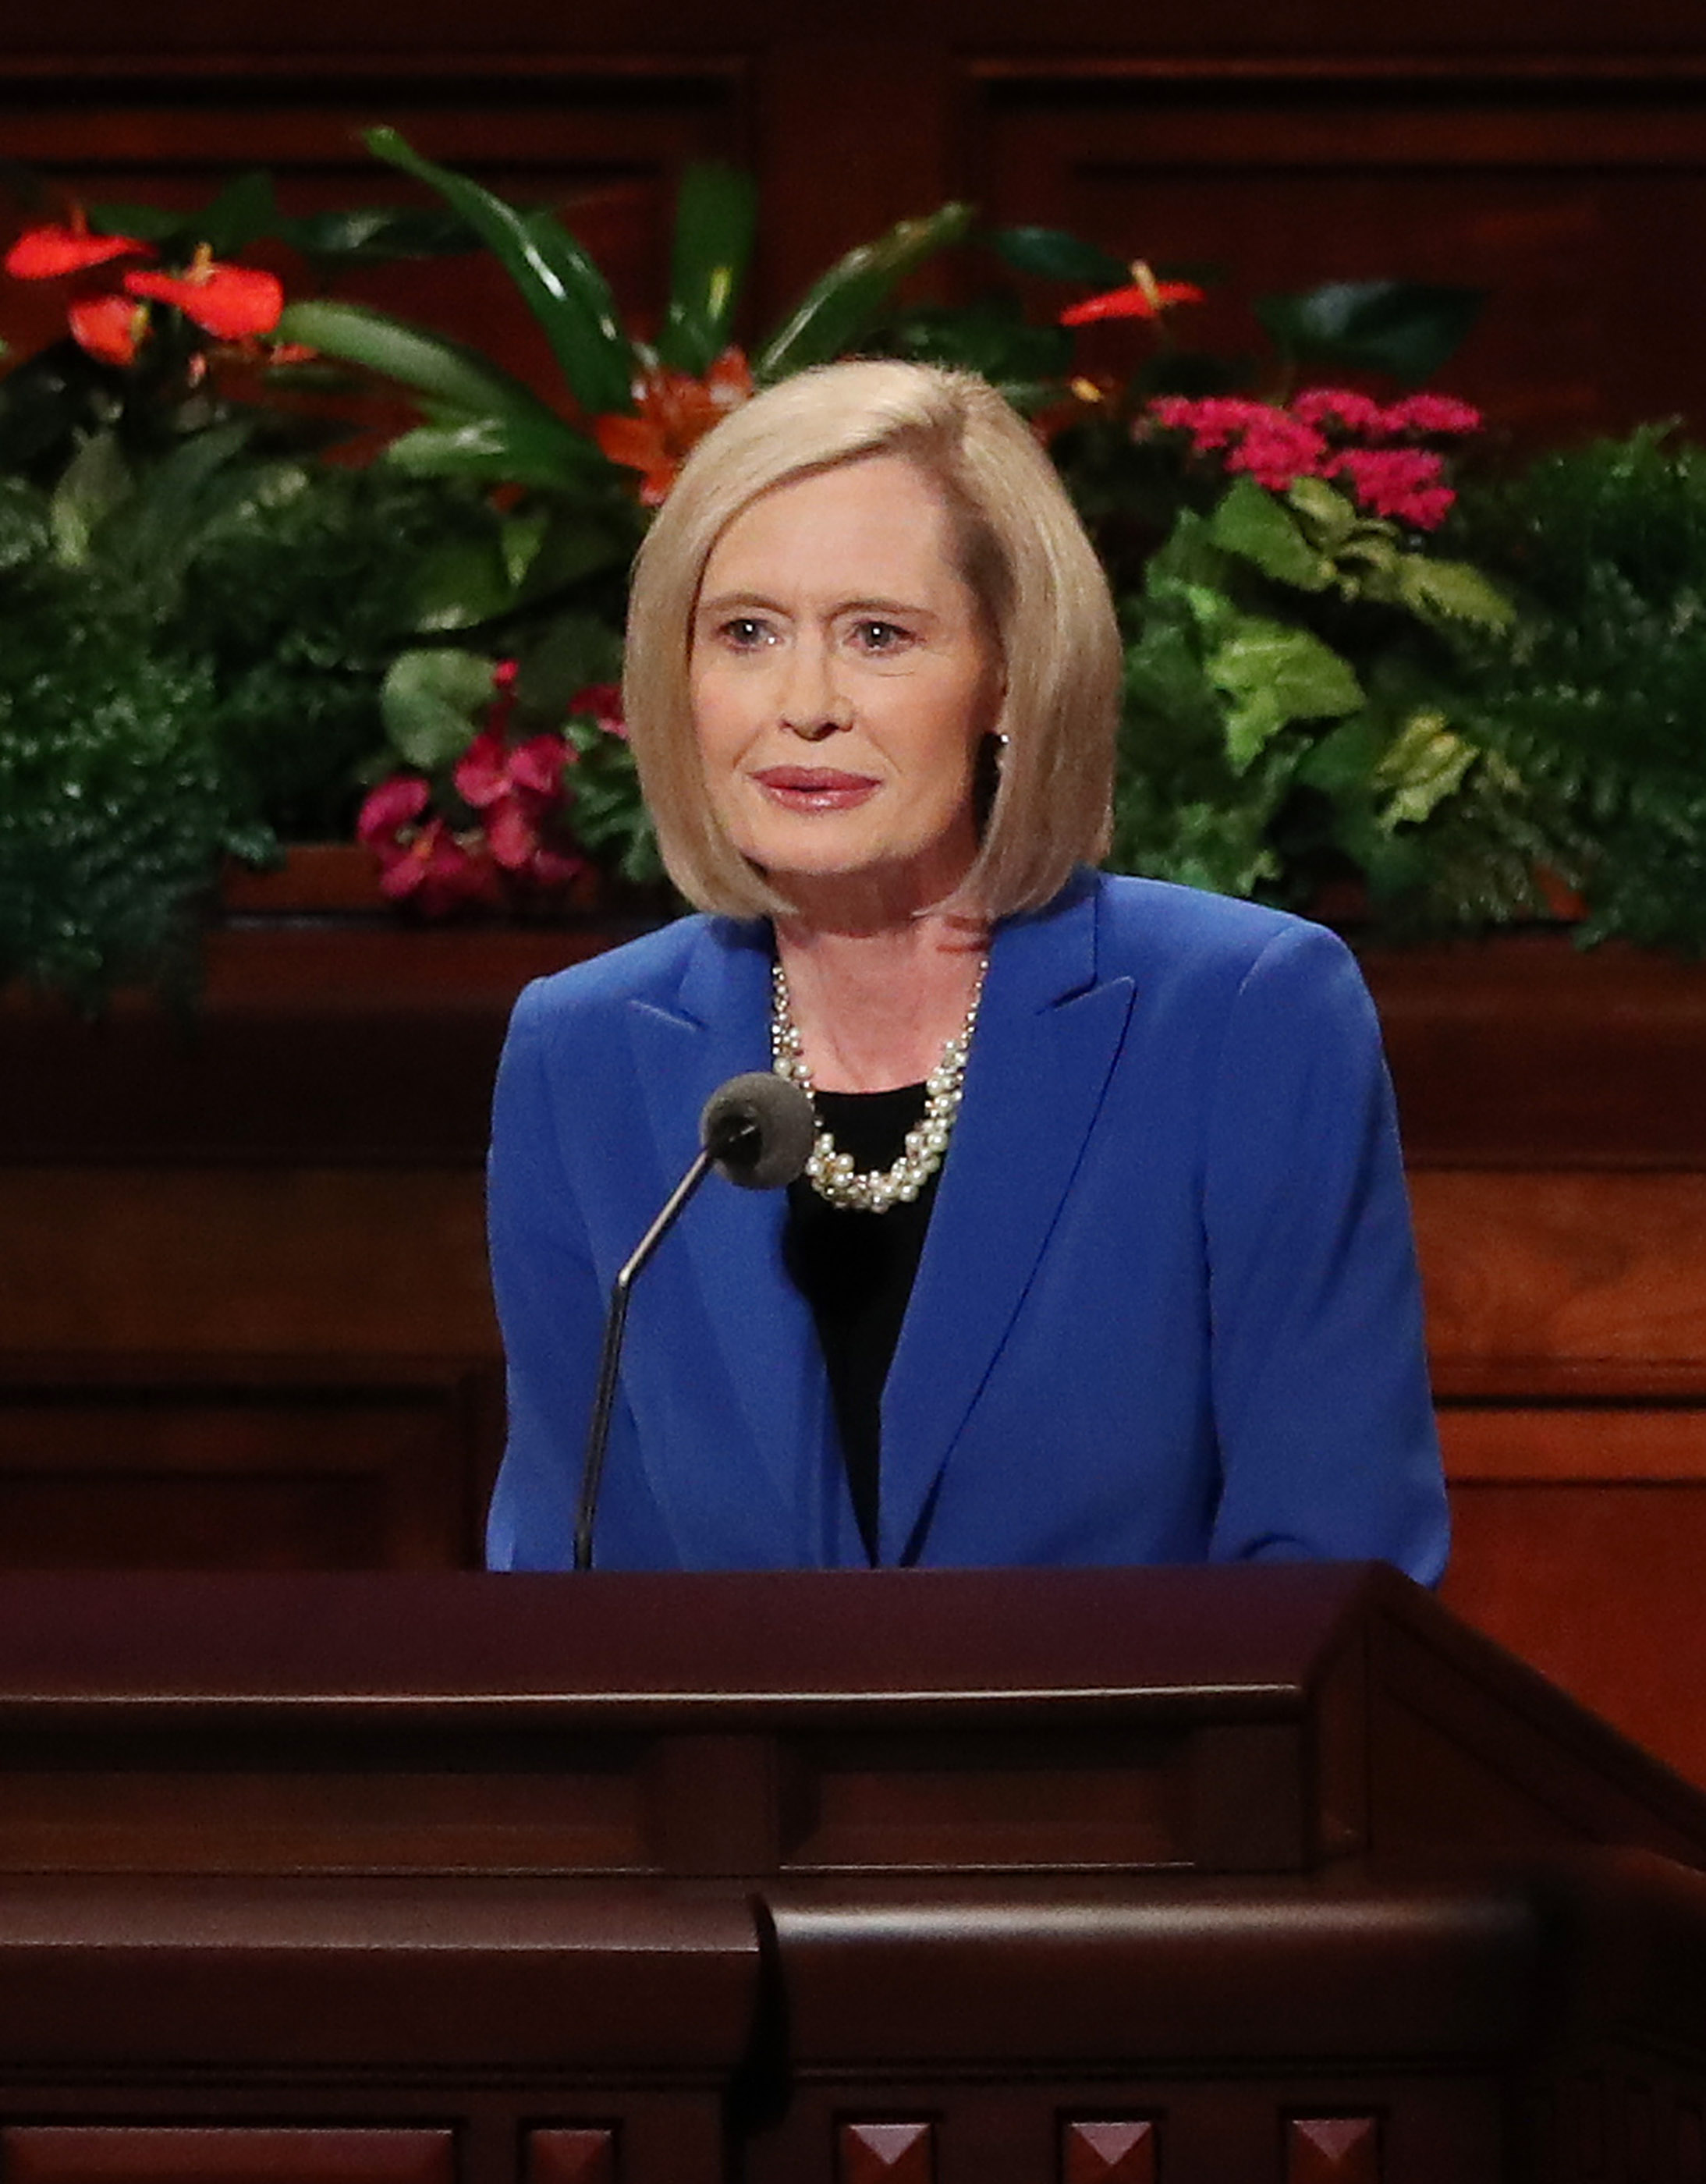 Sister Bonnie H. Cordon, General Young Women President, speaks during the 188th Semiannual General Conference of The Church of Jesus Christ of Latter-day Saints in Salt Lake City on Sunday, Oct. 7, 2018.